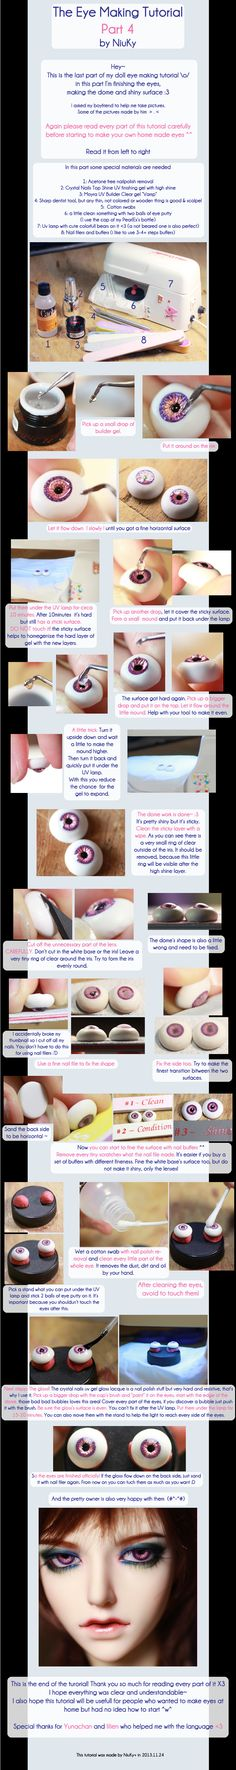 The Eye Making Tutorial 4 by NiuKy.deviantart.com on @deviantART